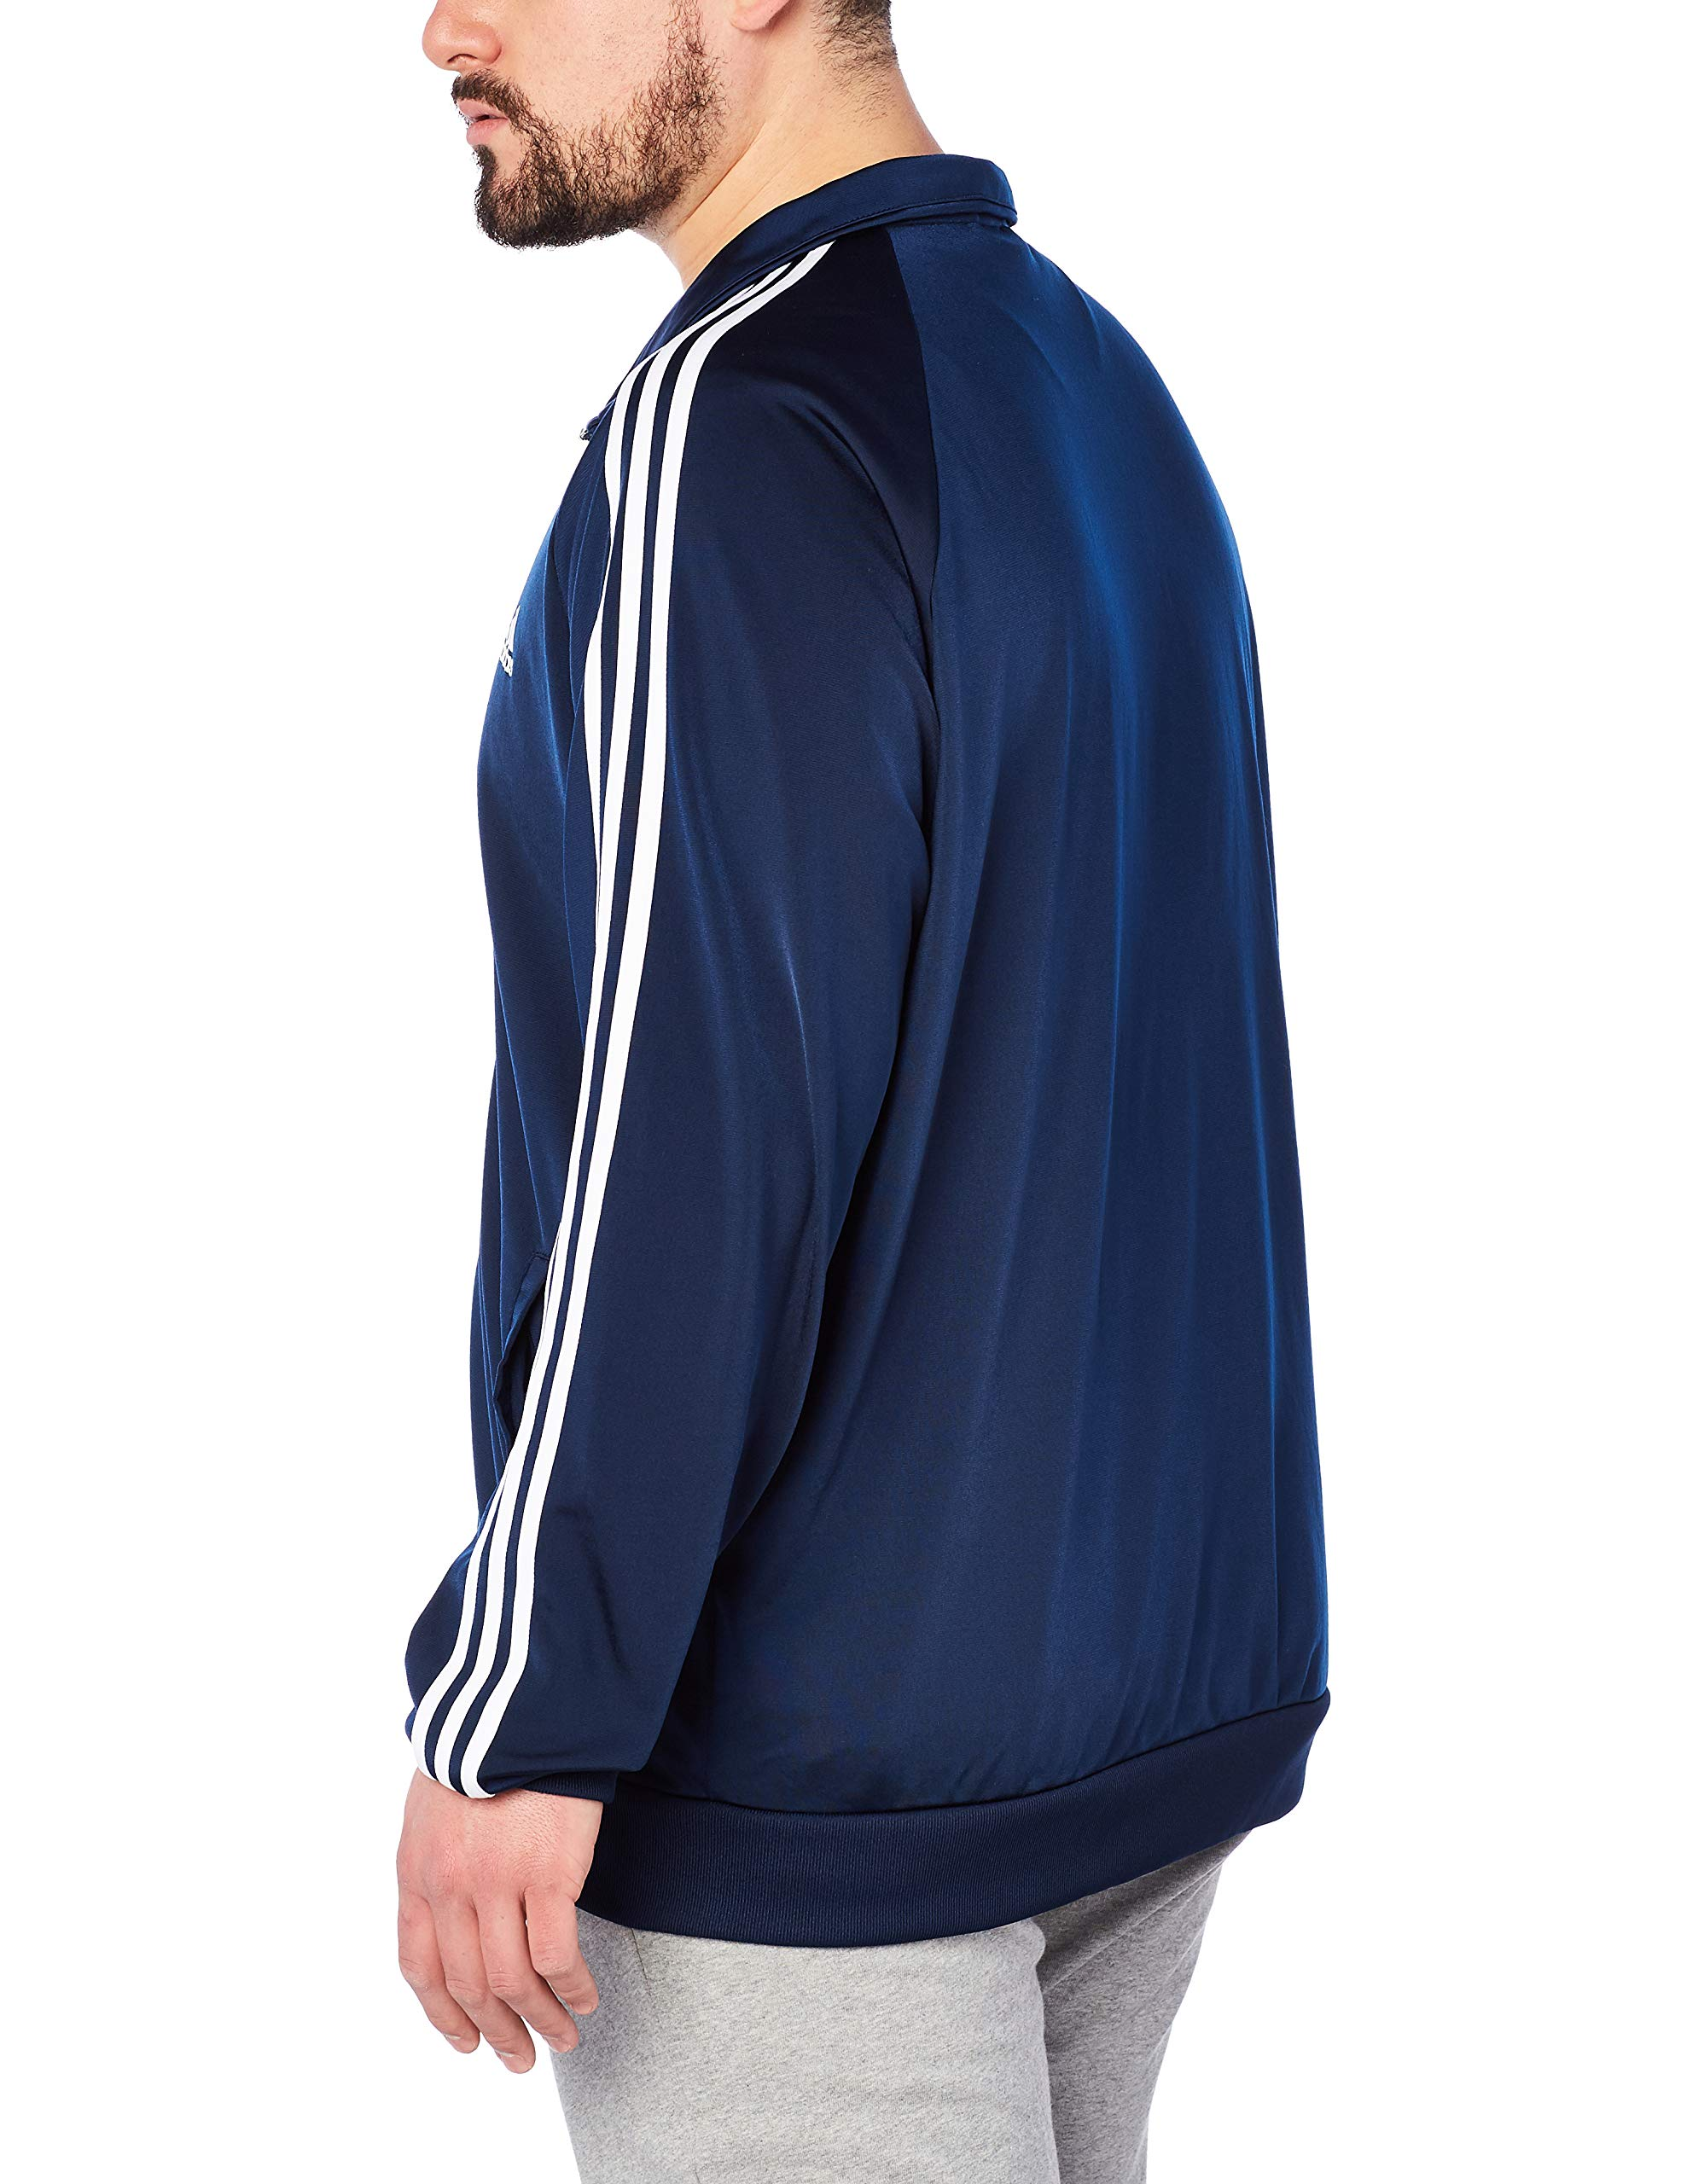 adidas Men's Essentials 3-Stripe Tricot Track Jacket, Collegiate Navy/White, Small by adidas (Image #3)